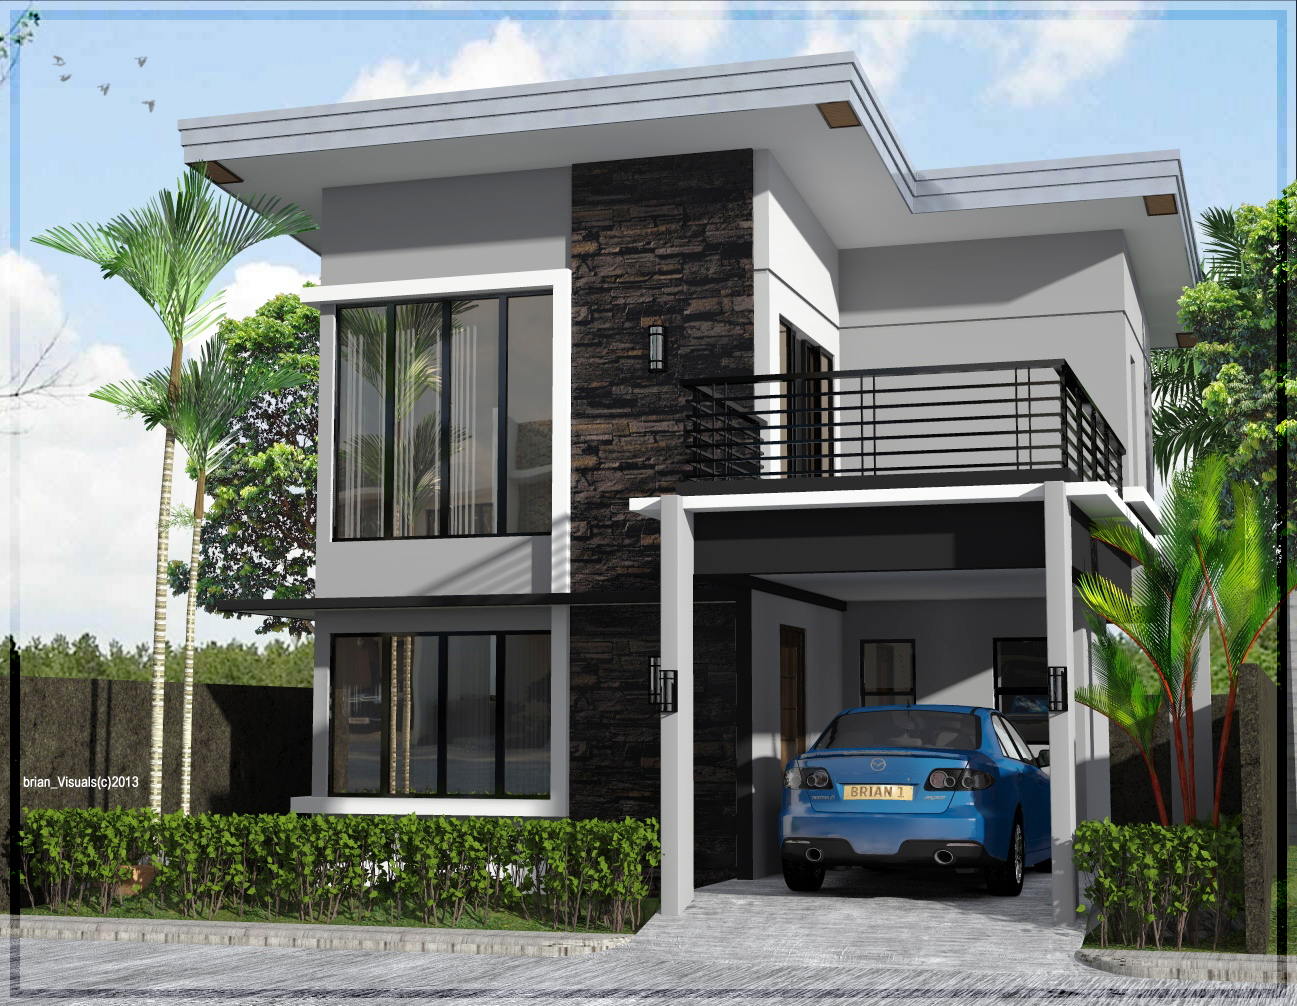 Two Storey Asian House At Antique By Arimankodi On Deviantart